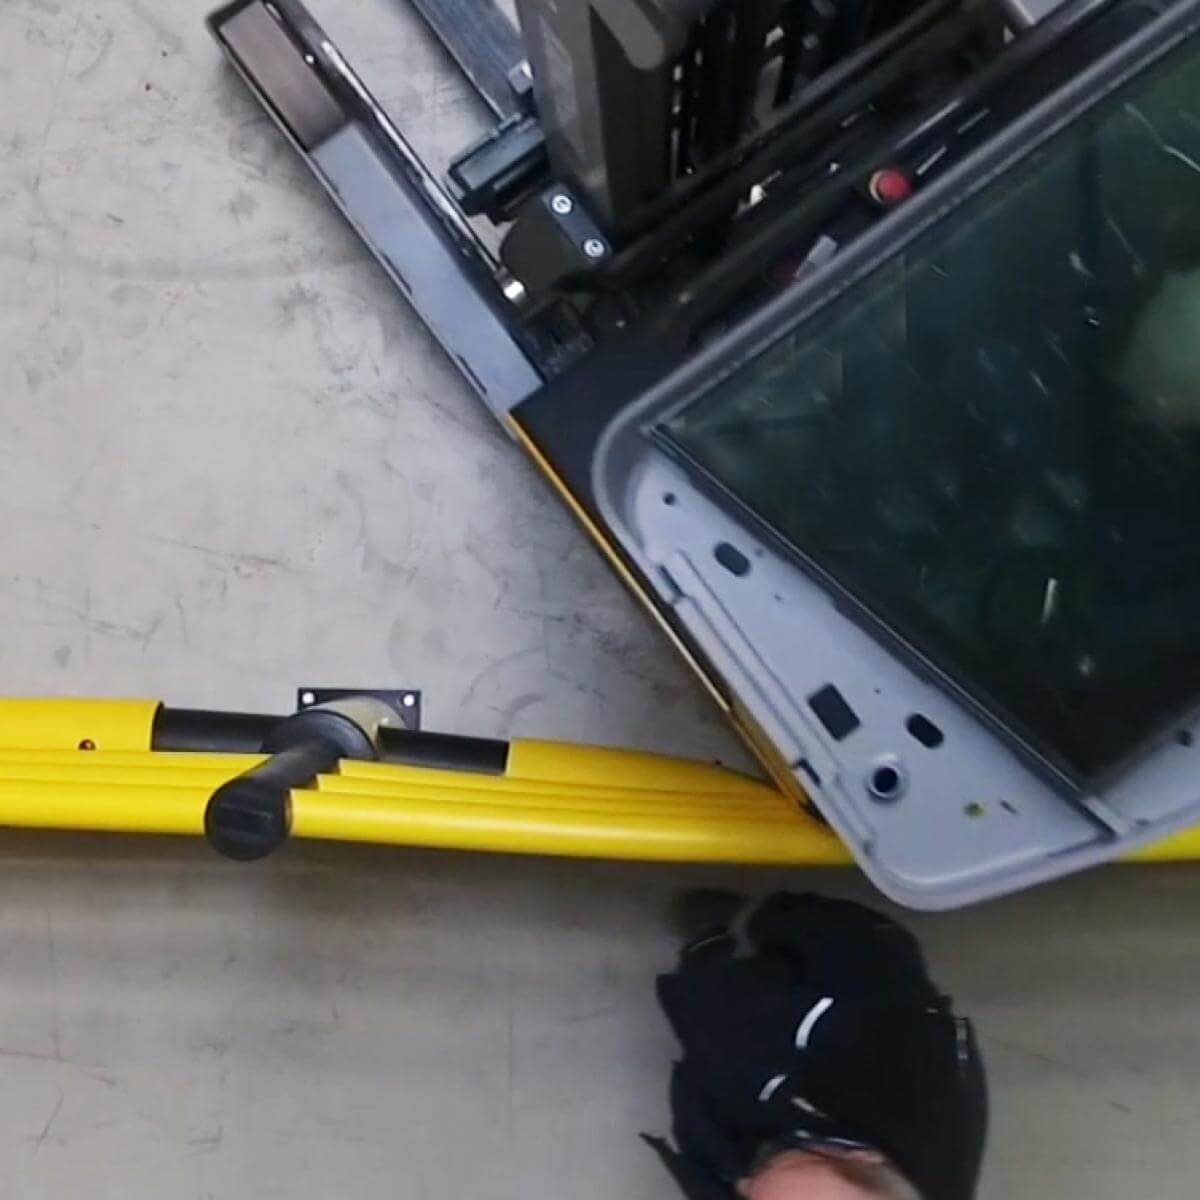 Troax Safety Barrier System protects a man from a forklift truck.